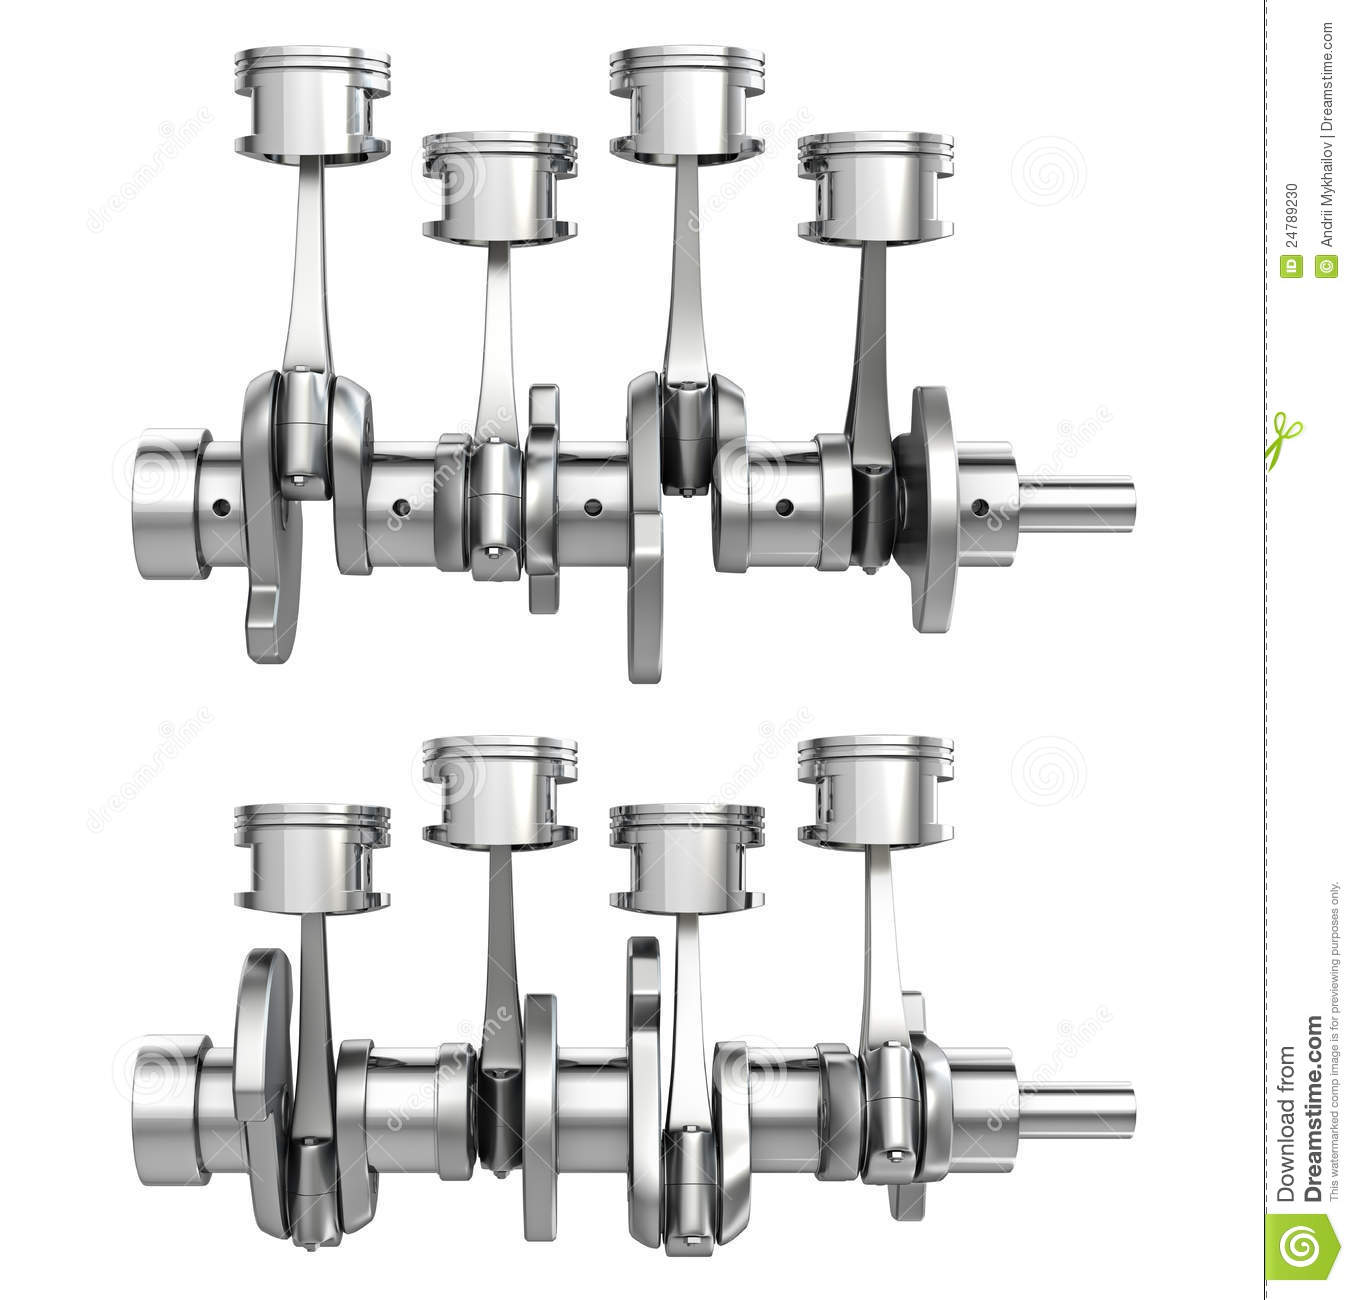 Engine Pistons On A Crankshaft Two Positions Stock Photo